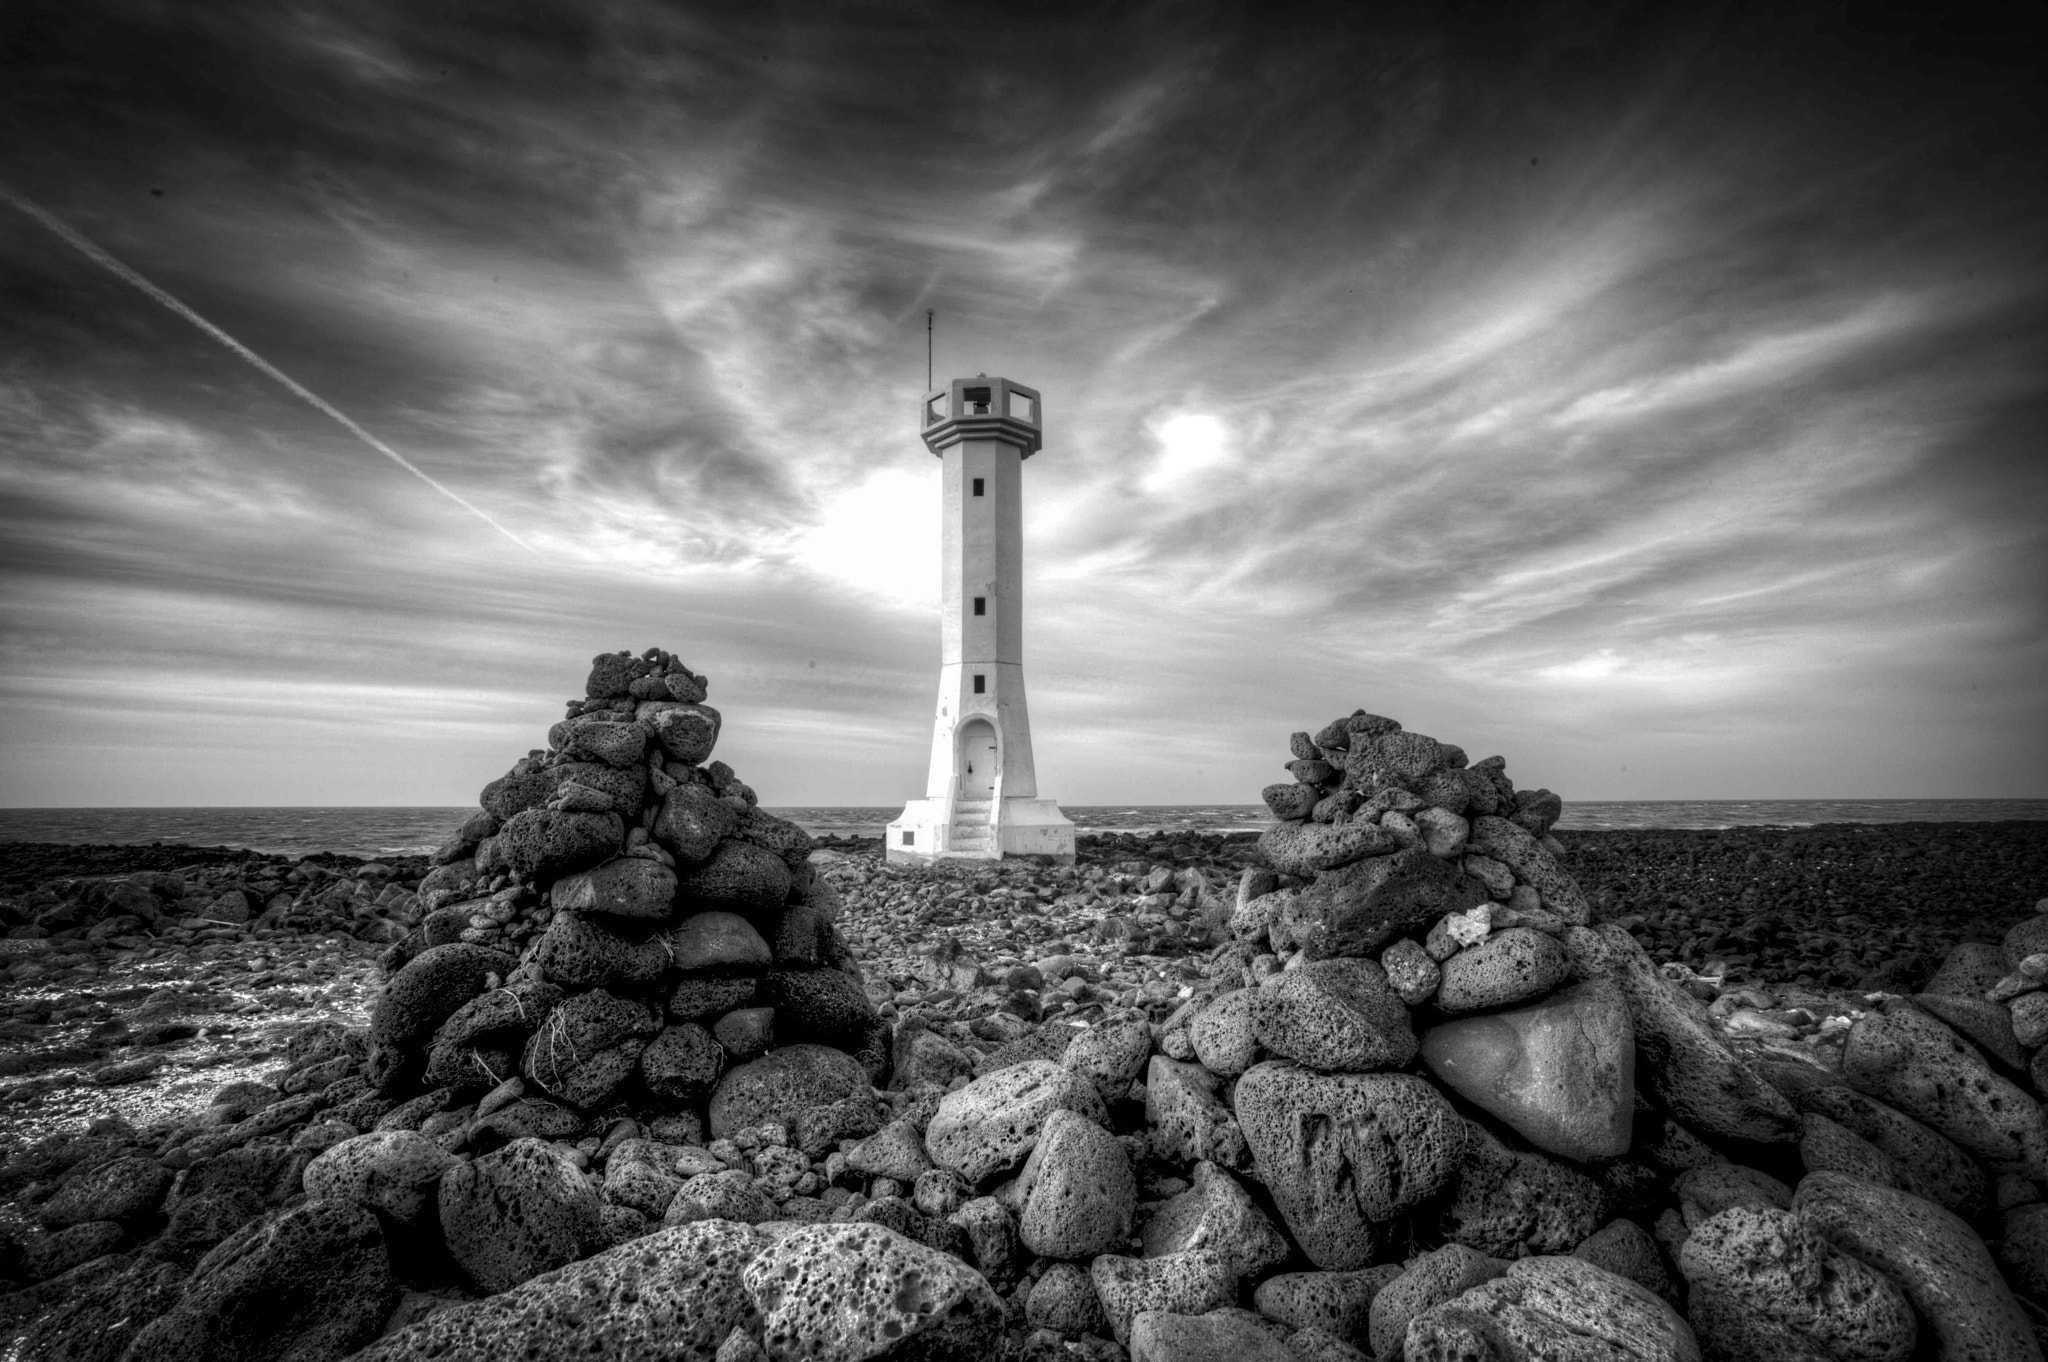 Photograph A lighthouse by Matthew Lamers on 500px